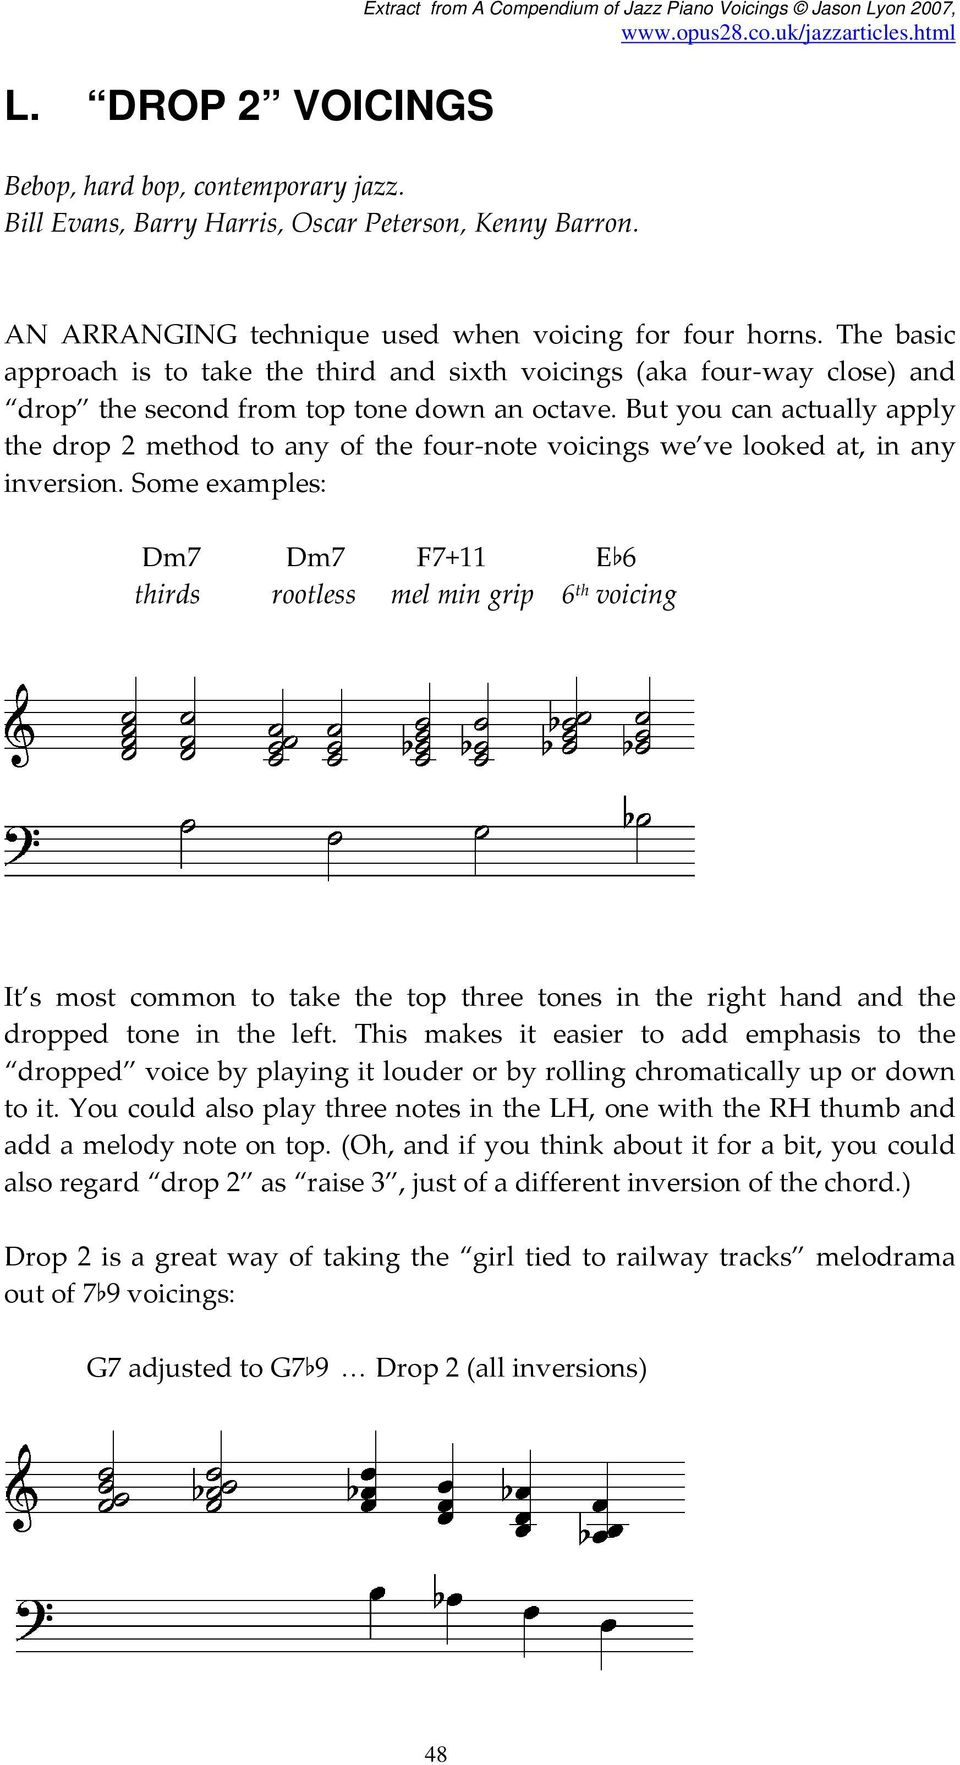 L  DROP 2 VOICINGS  Bebop, hard bop, contemporary jazz  Bill